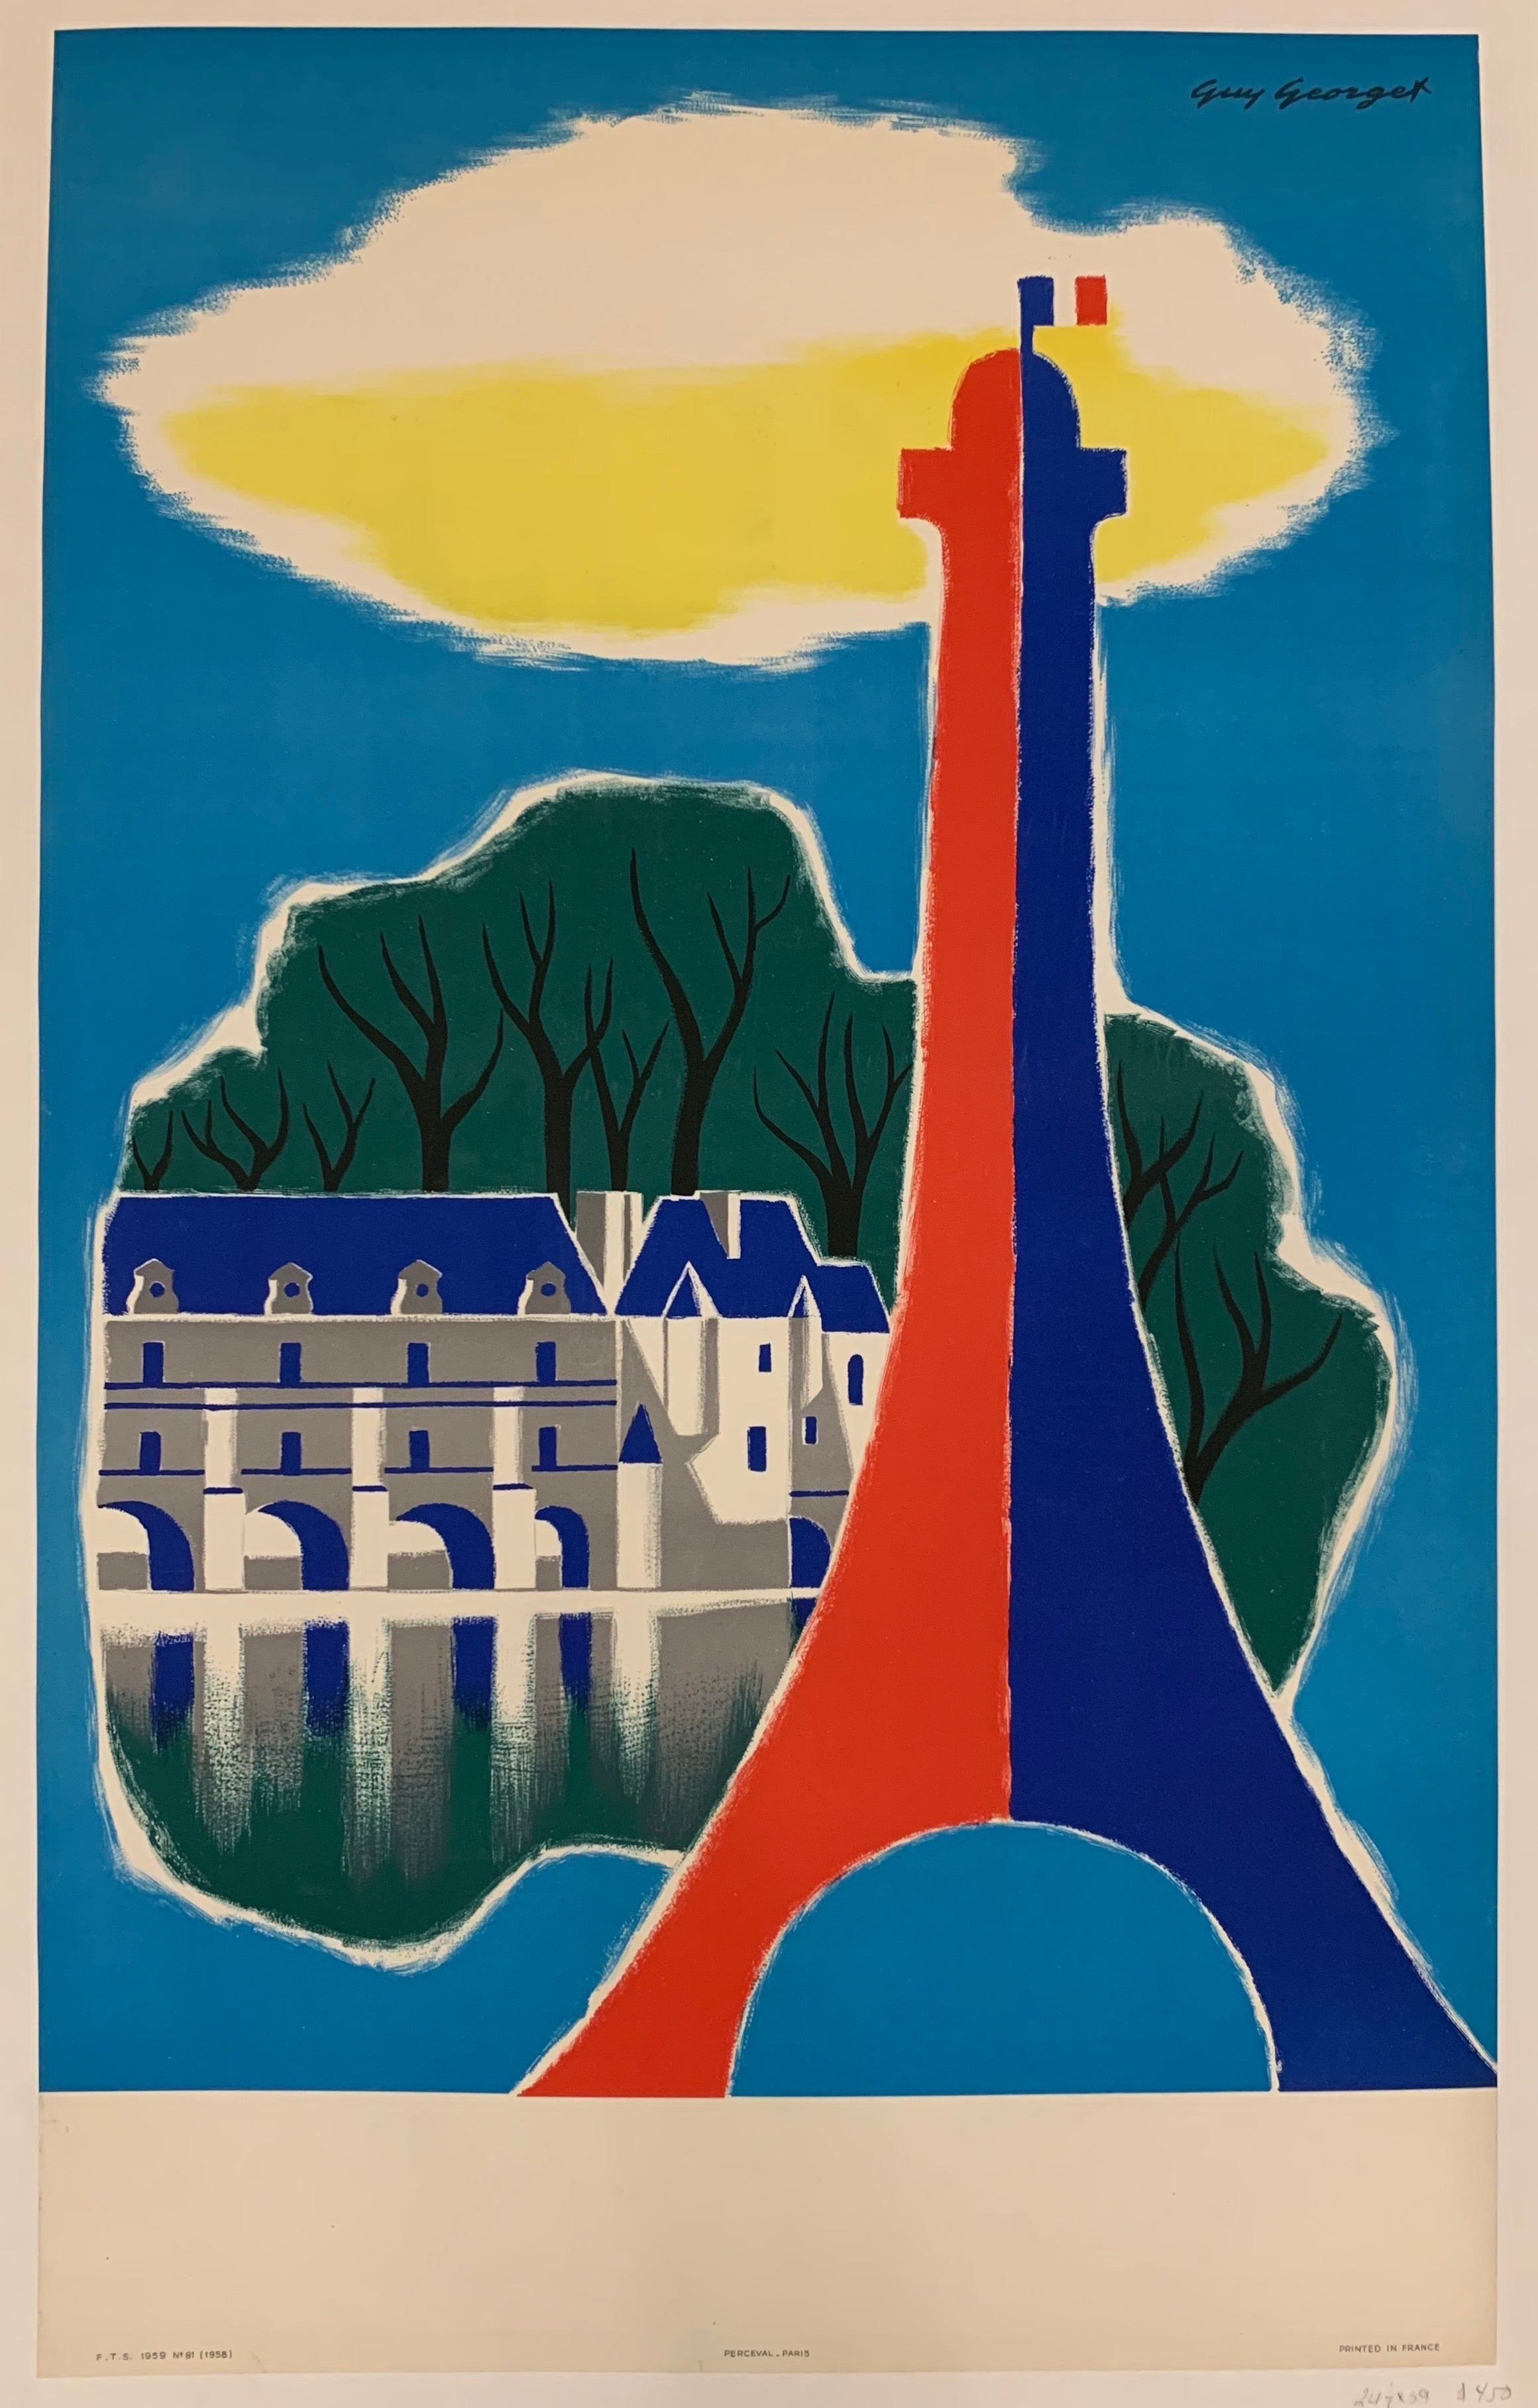 Poster of a red, white, and blue Eiffel Tower with an image of a chateau overlooking the water in the background.